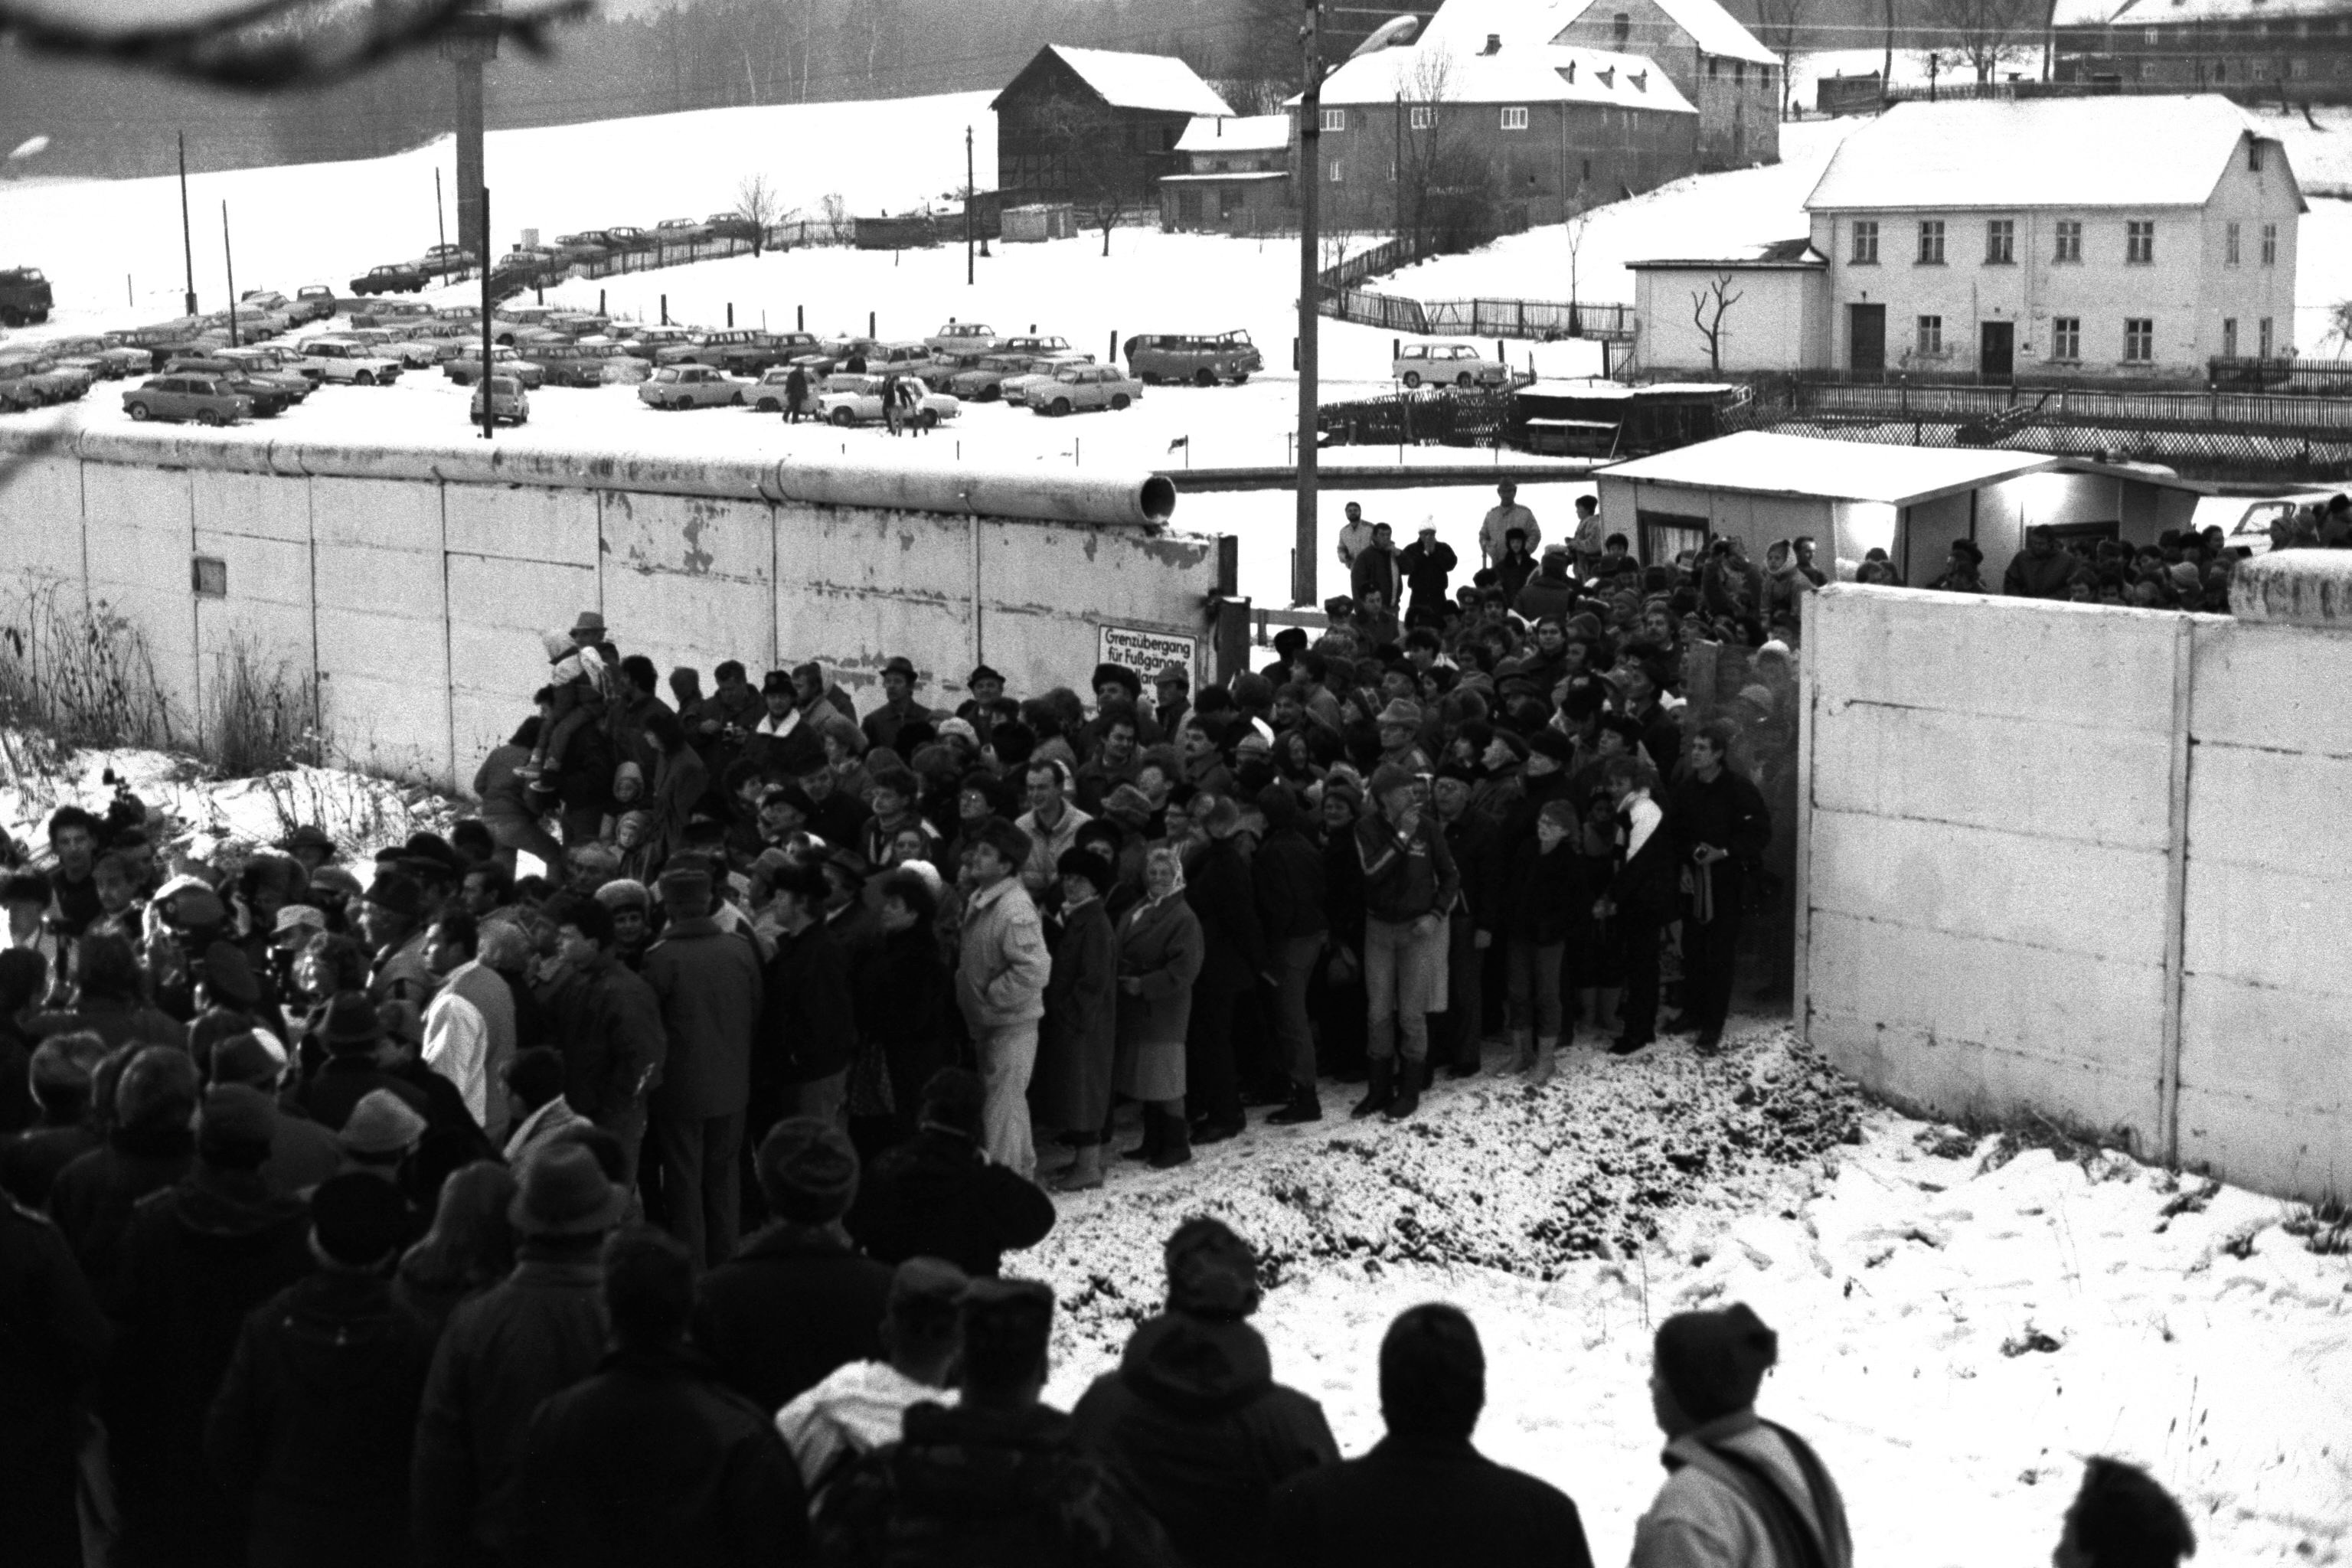 People cross the East German border from East to West Germany, after a border crossing checkpoint was opened at the Wall in the village of Moedlareuth, about 300 kilometres (186 miles) south of Berlin, December 9, 1989. The Wall in the village of Moedlareuth, separating East from West Germany, was built in 1966. It was 700 meters long and 3.40 meters high, heavily guarded round the clock by East German border police and divided the village till the Wall came down in 1989.